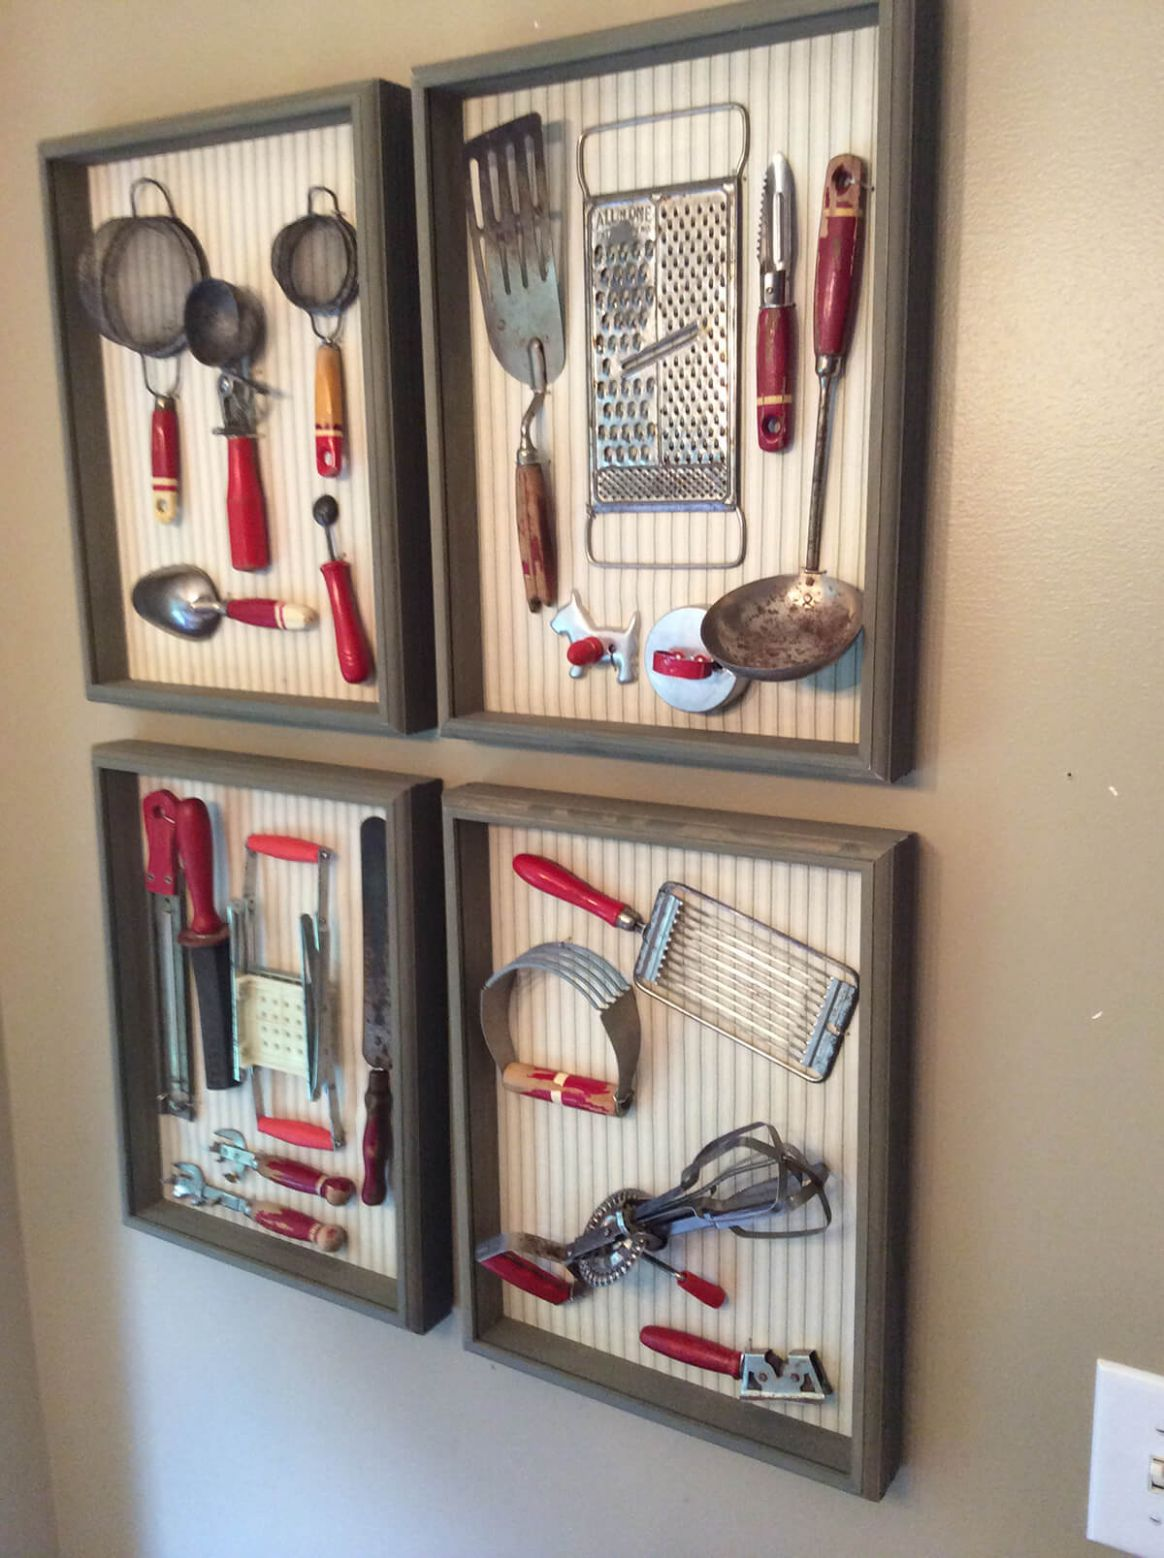 10 Best Kitchen Wall Decor Ideas and Designs for 10 - kitchen wall decor ideas diy